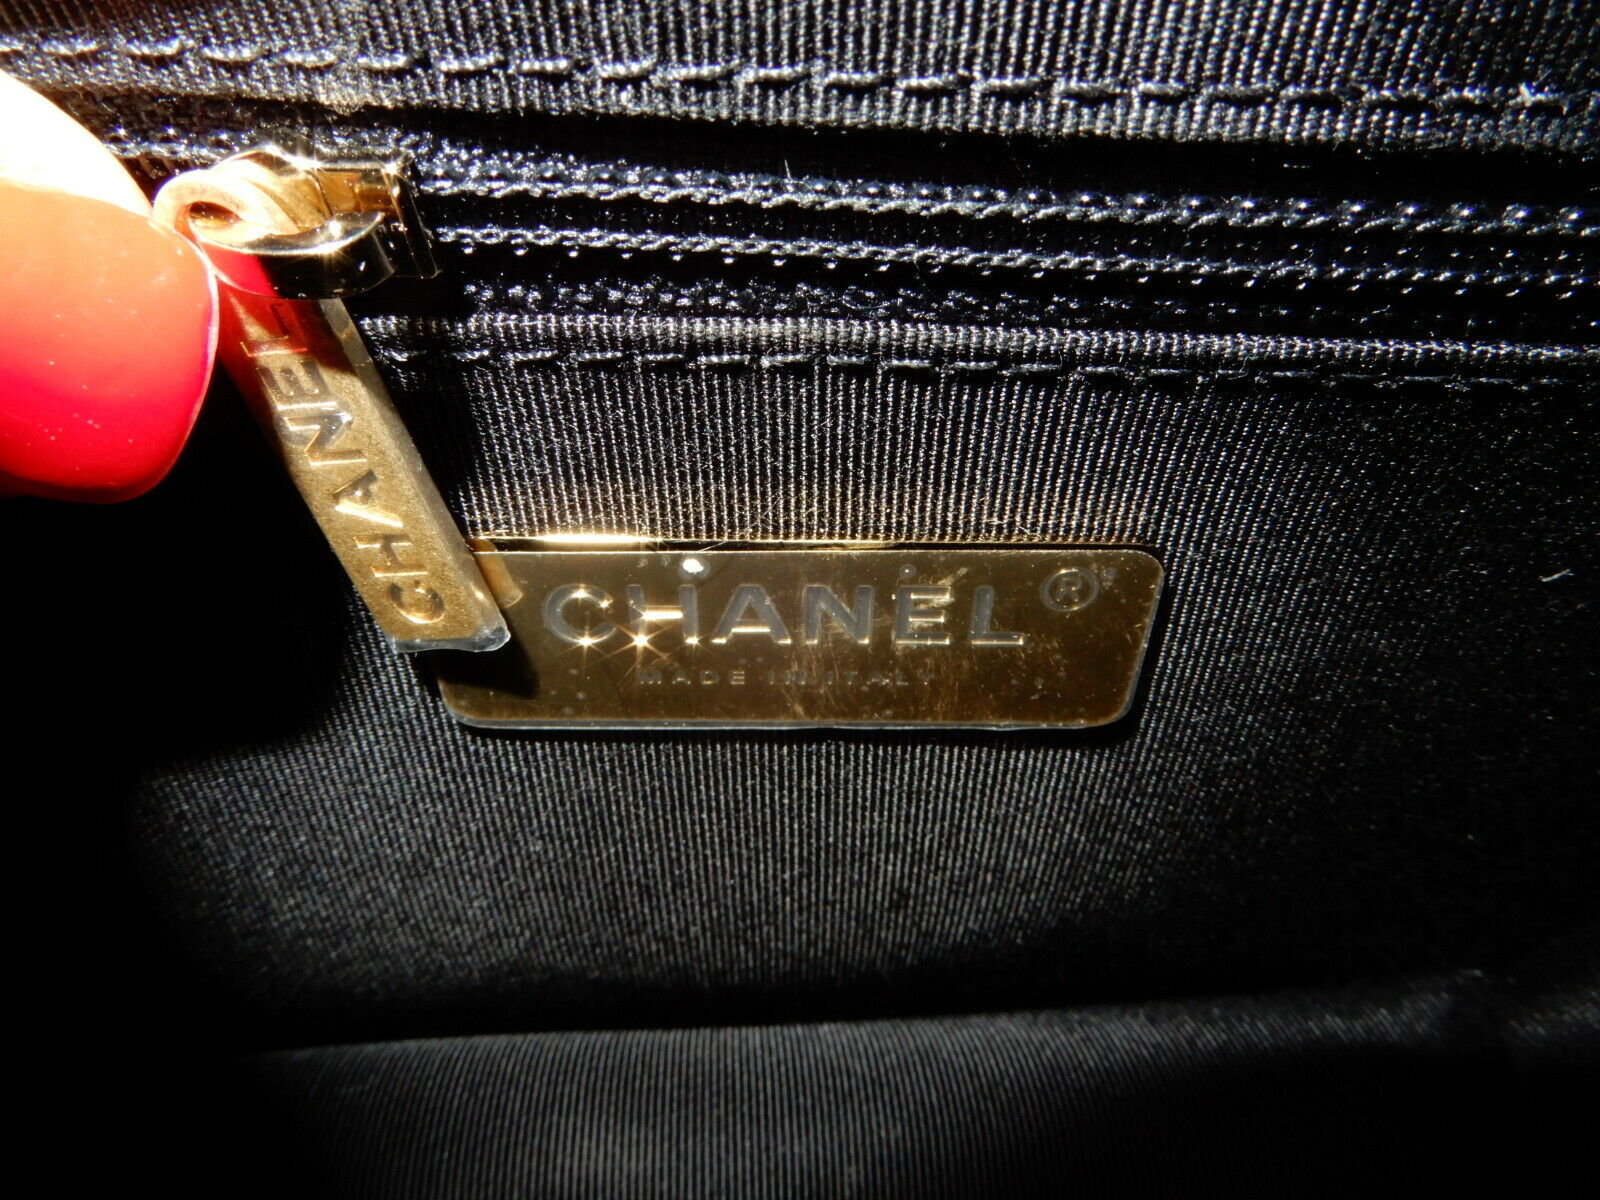 Chanel Small Black Calf Leather Chain Classic Flap Bag GHW New 2019